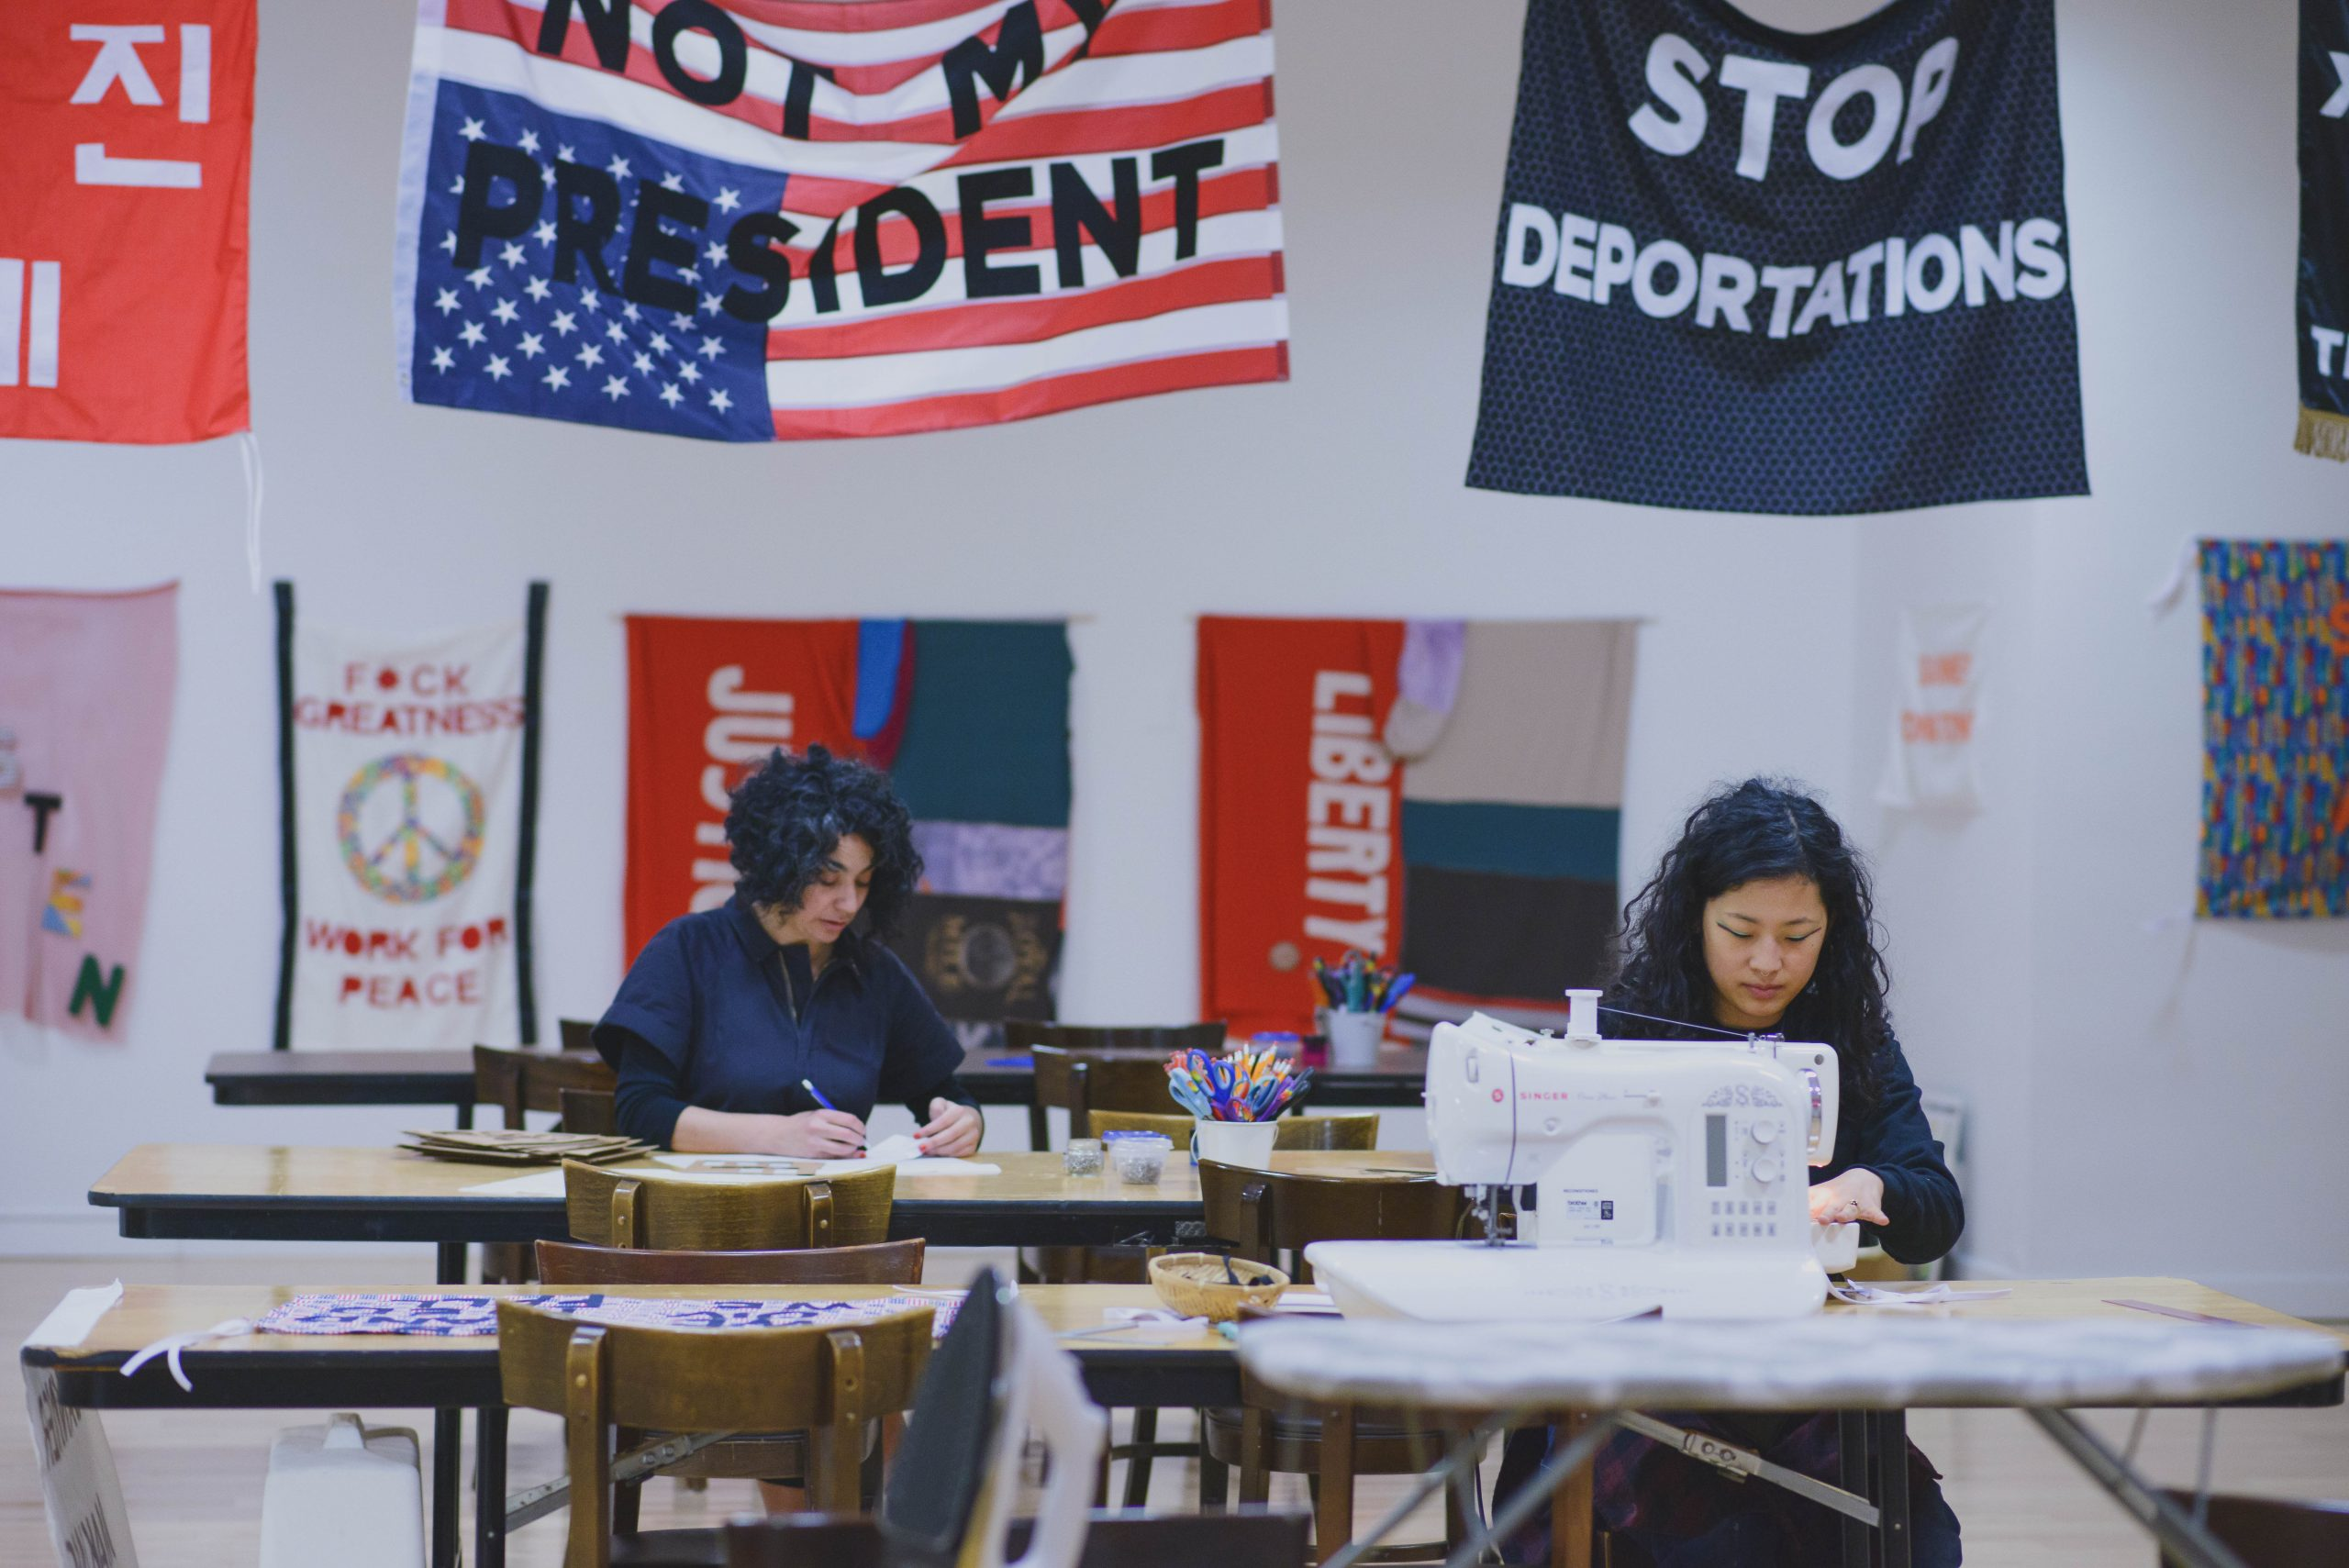 Protest Banner Learning Library Workshop at the Chicago Cultural Center, 2016.